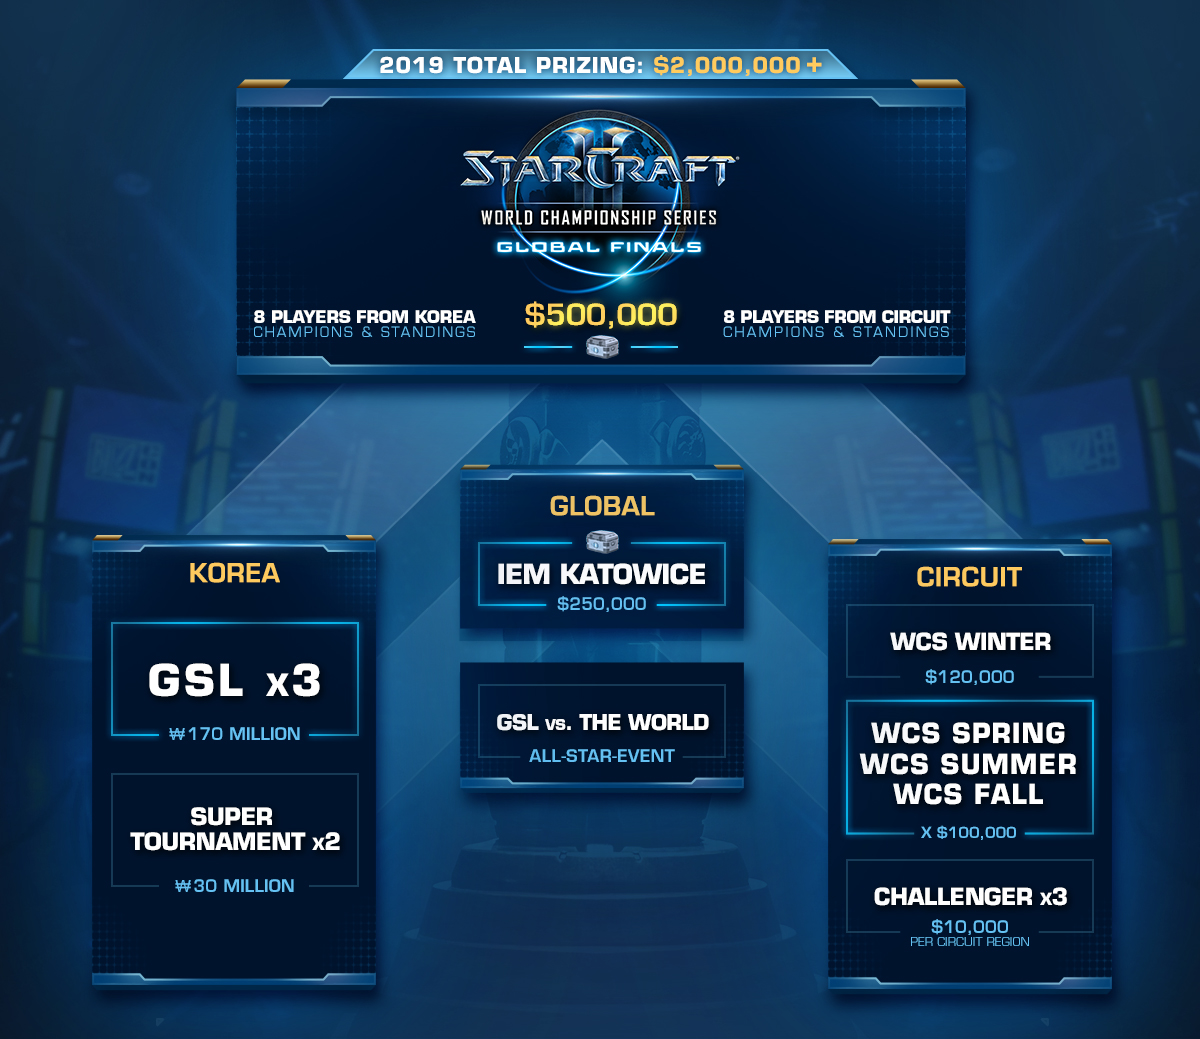 StarCraft II World Championship Series 2019